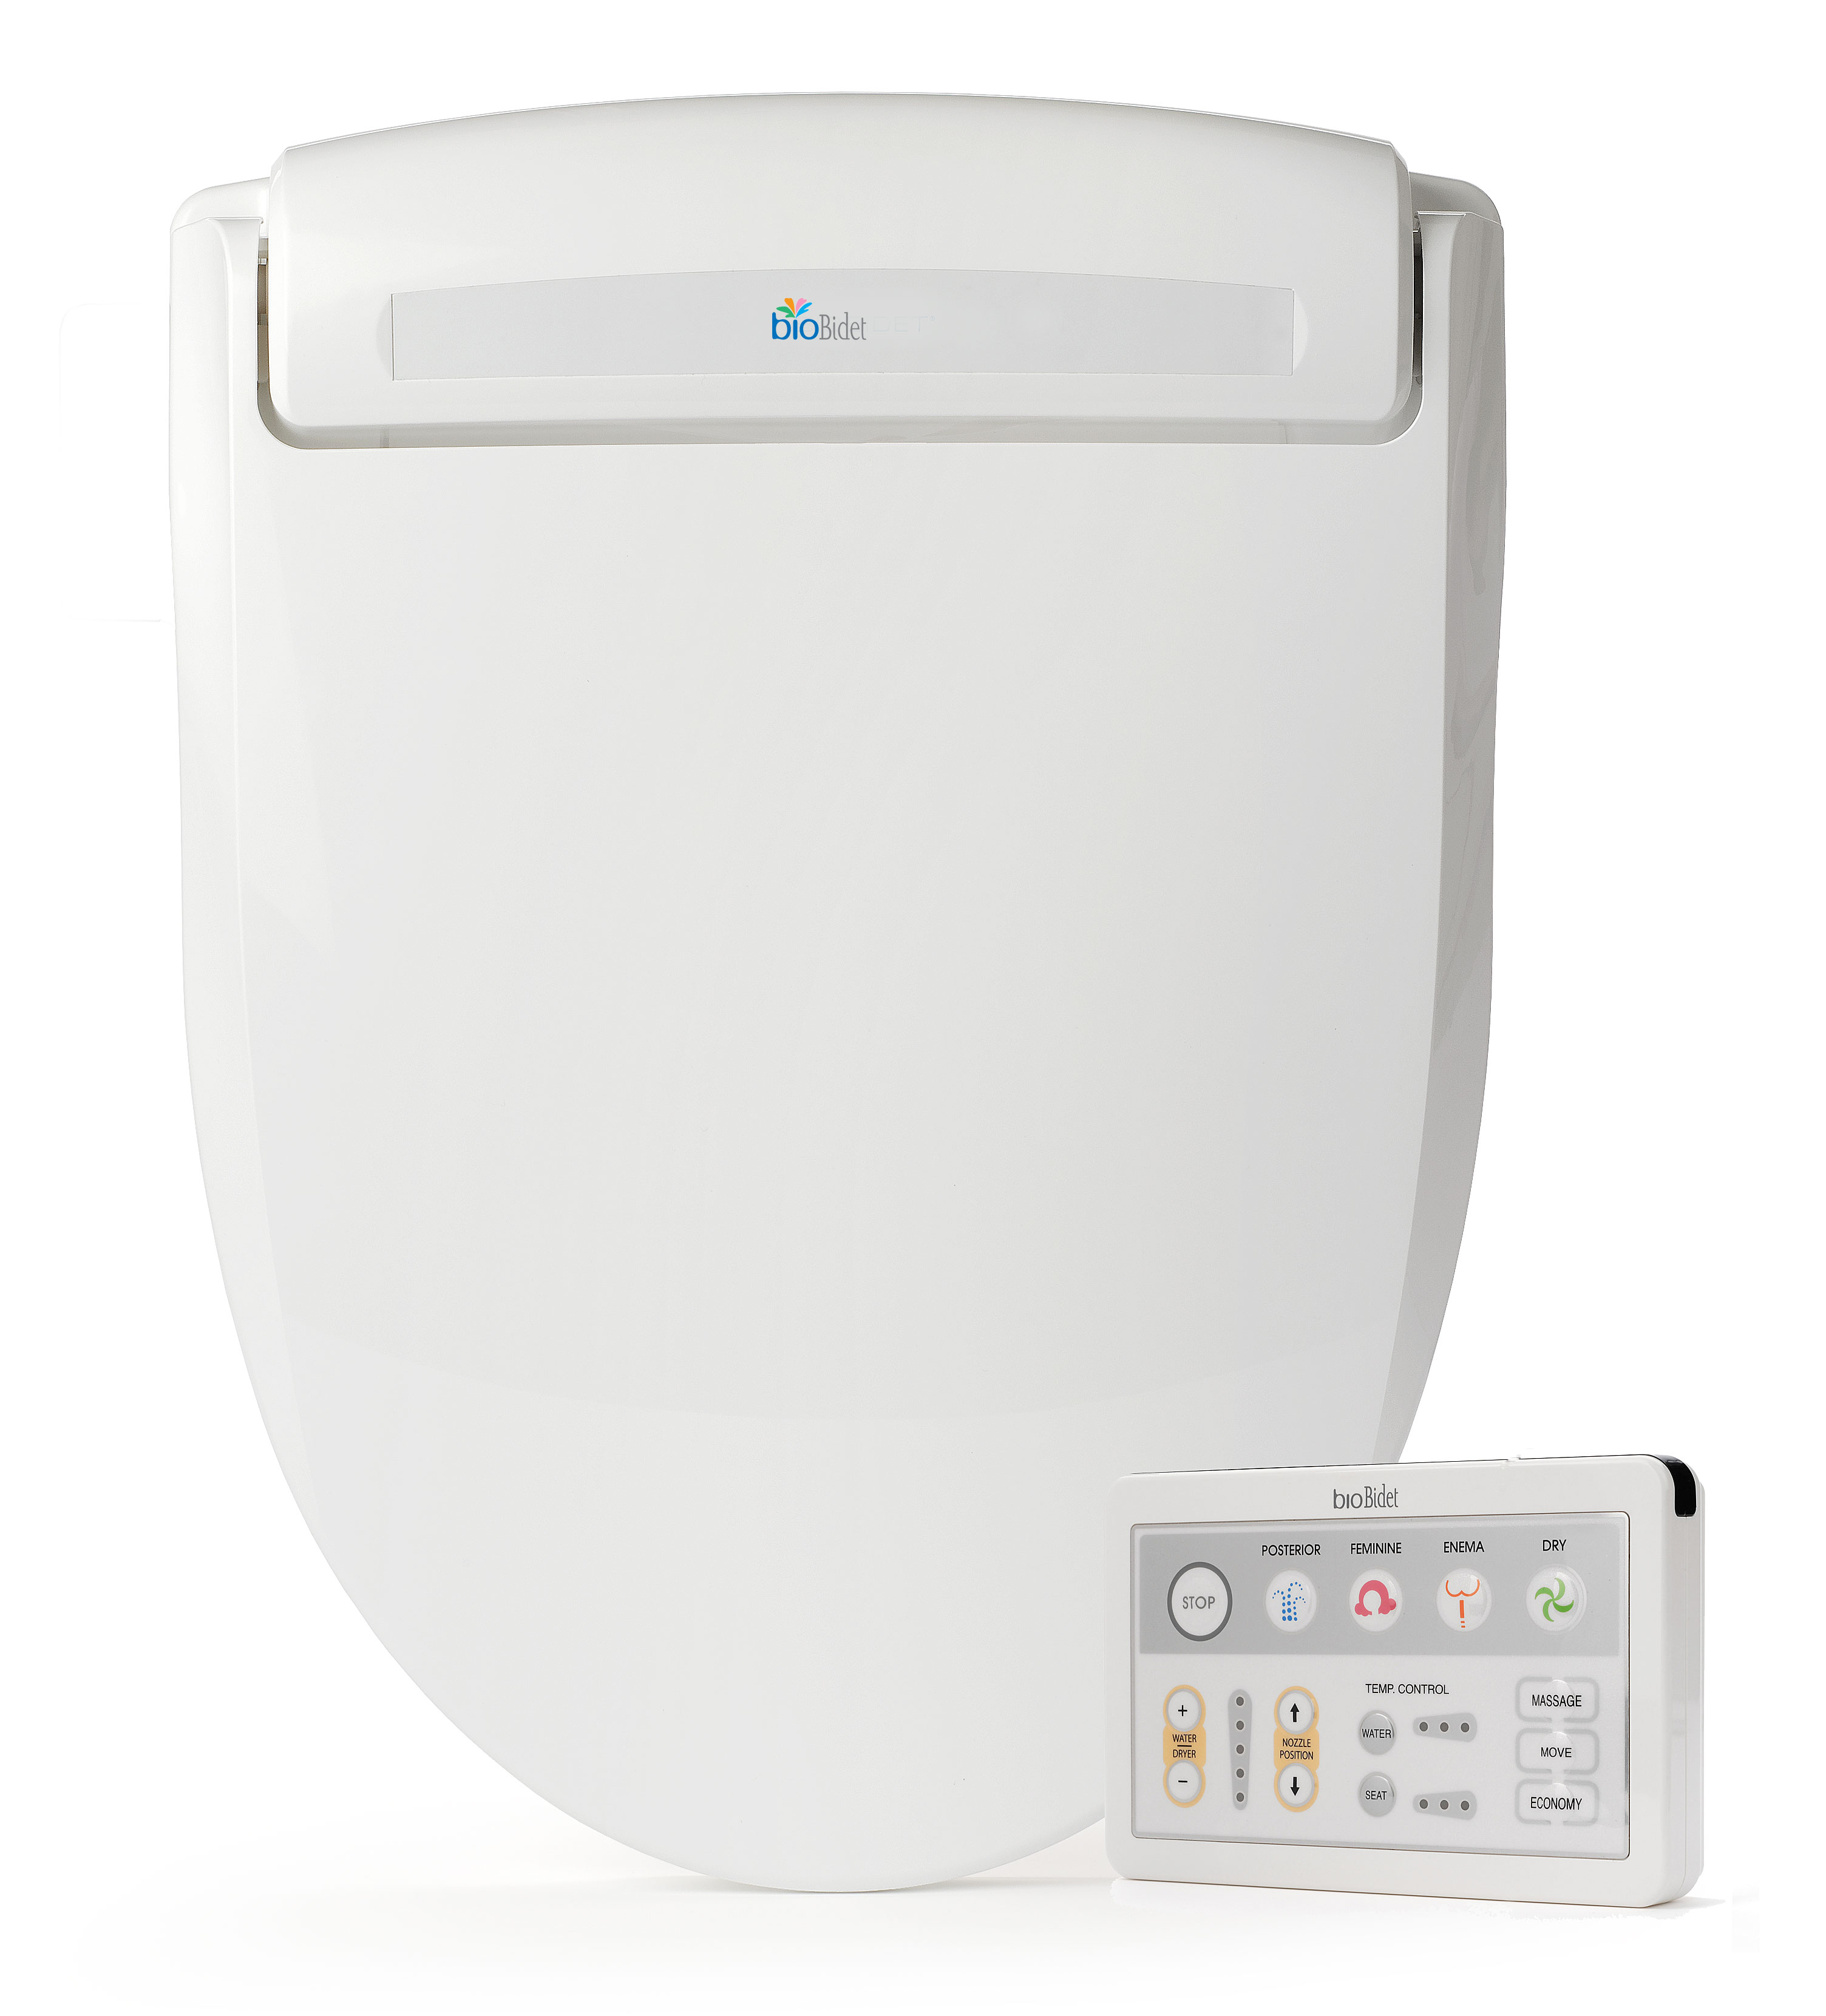 Brilliant Bio Bidet Supreme Bb 1000 Bidet Smart Toilet Seat With Wireless Remote Control White Caraccident5 Cool Chair Designs And Ideas Caraccident5Info